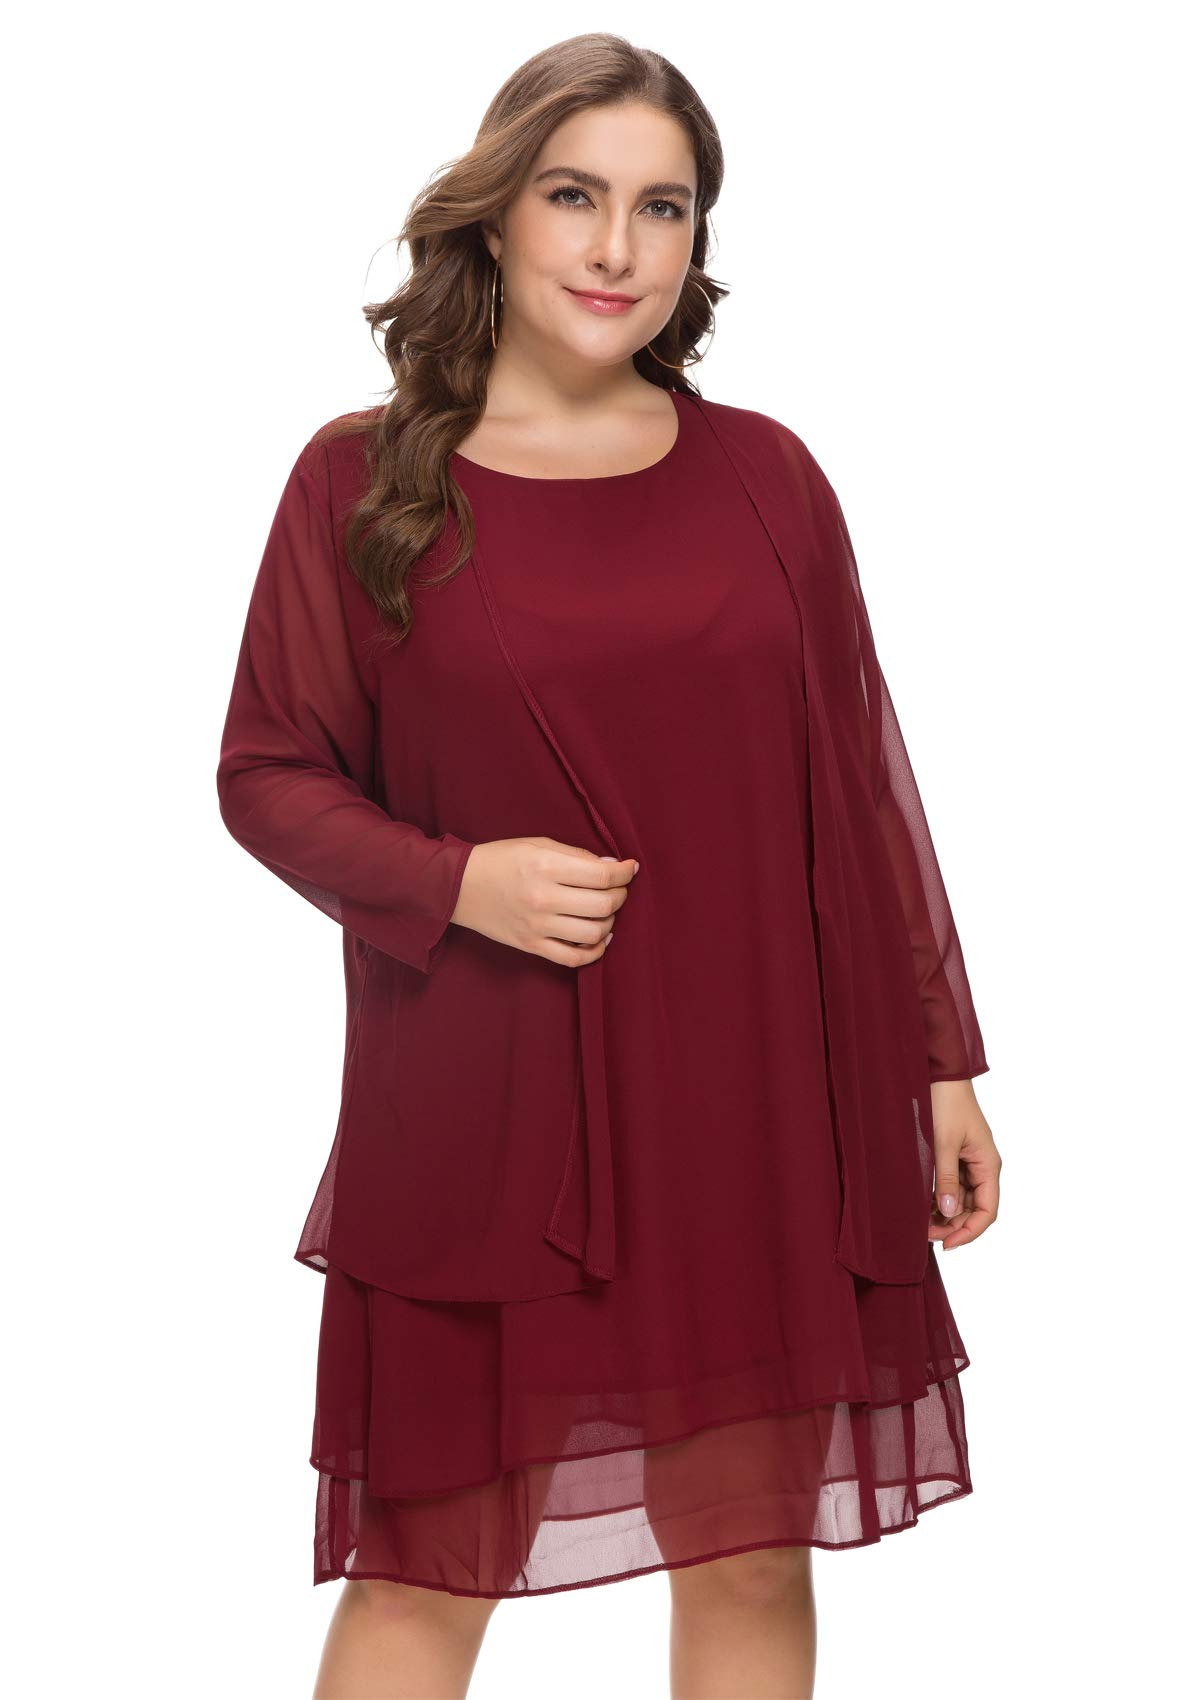 c66245c00df ... Dresses MERRYA Women s Plus Size Business Chiffon Jacket Mother of The Bride  Dress Suit (Wine Red